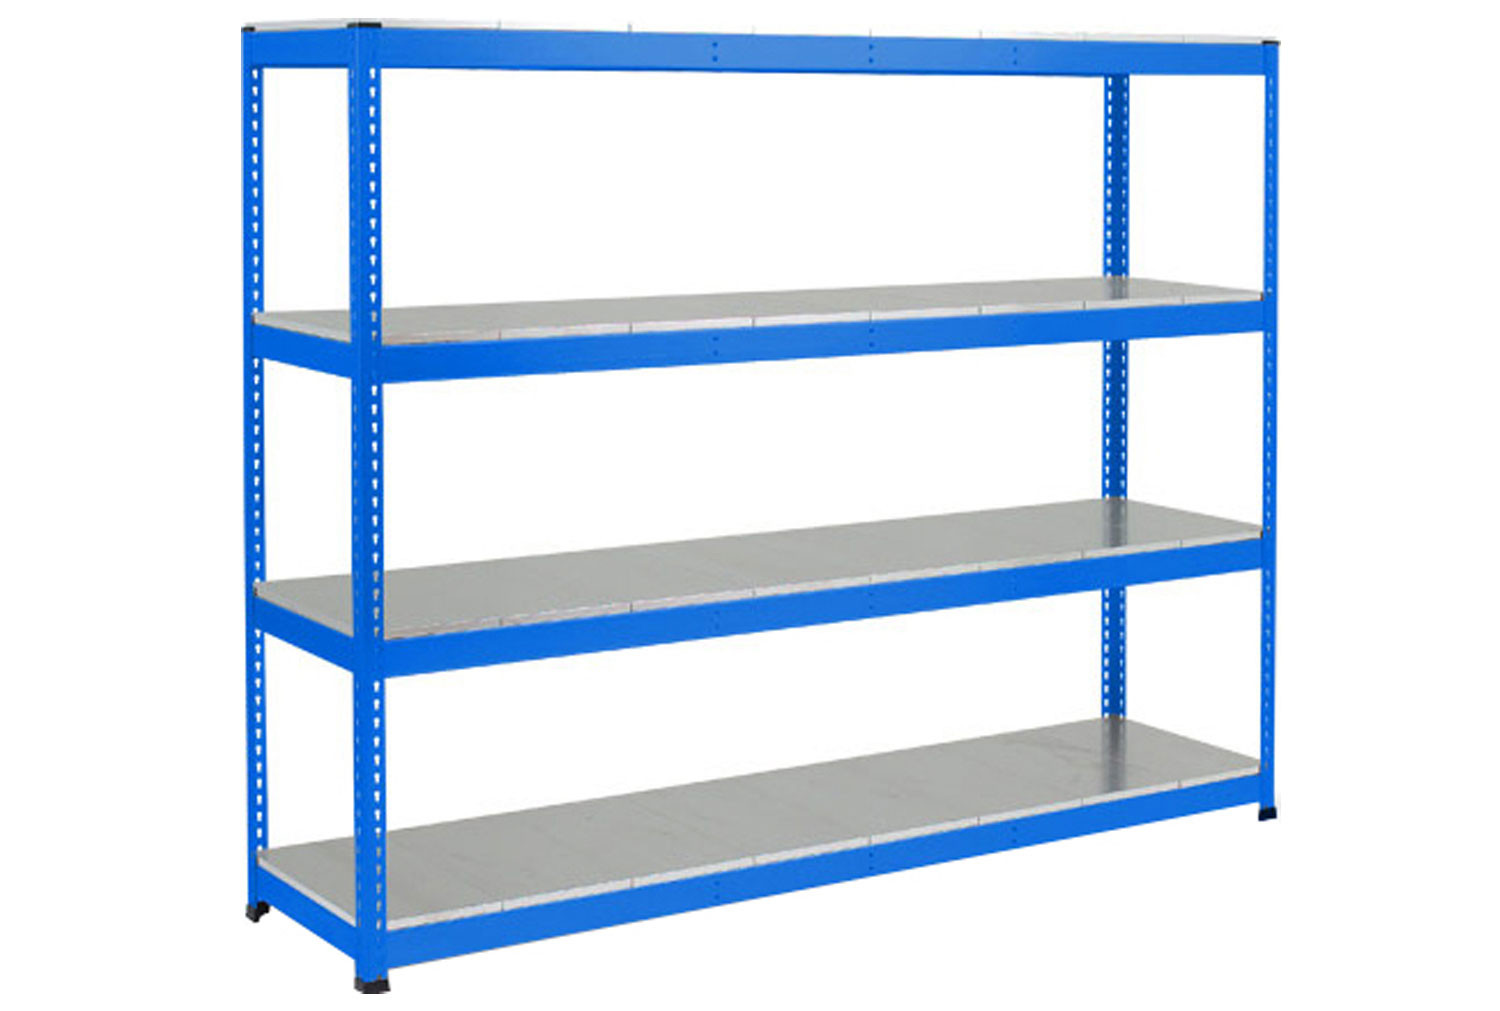 Rapid 1 Heavy Duty Shelving With 4 Galvanized Shelves 2440wx1980h (Blue)